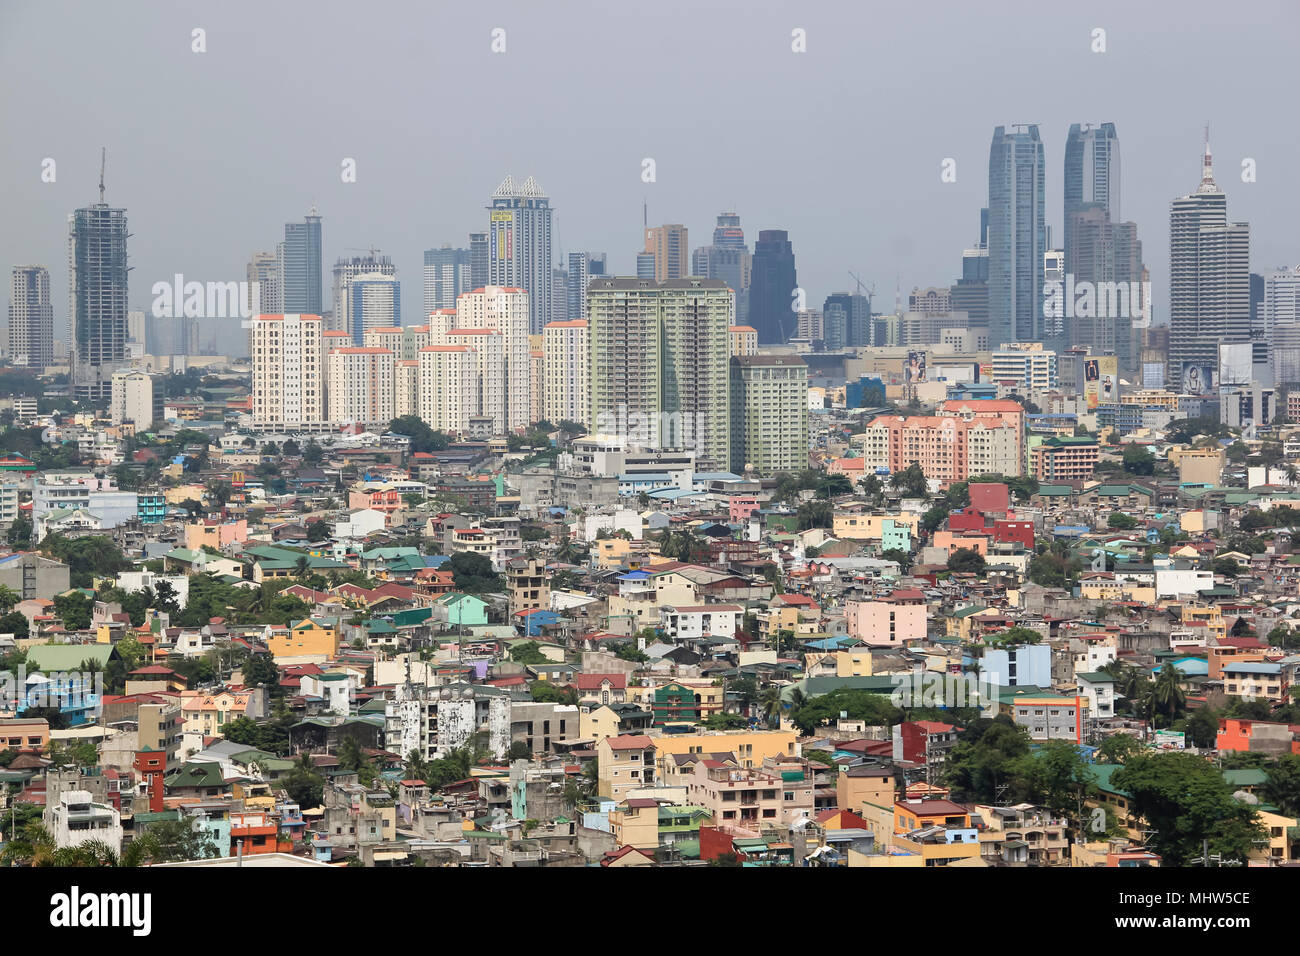 MANILA - April 2 2011: view over Ortigas from Makati towards Antipolo. Manila is the overcrowded capital of the Philippines and is located on the main - Stock Image